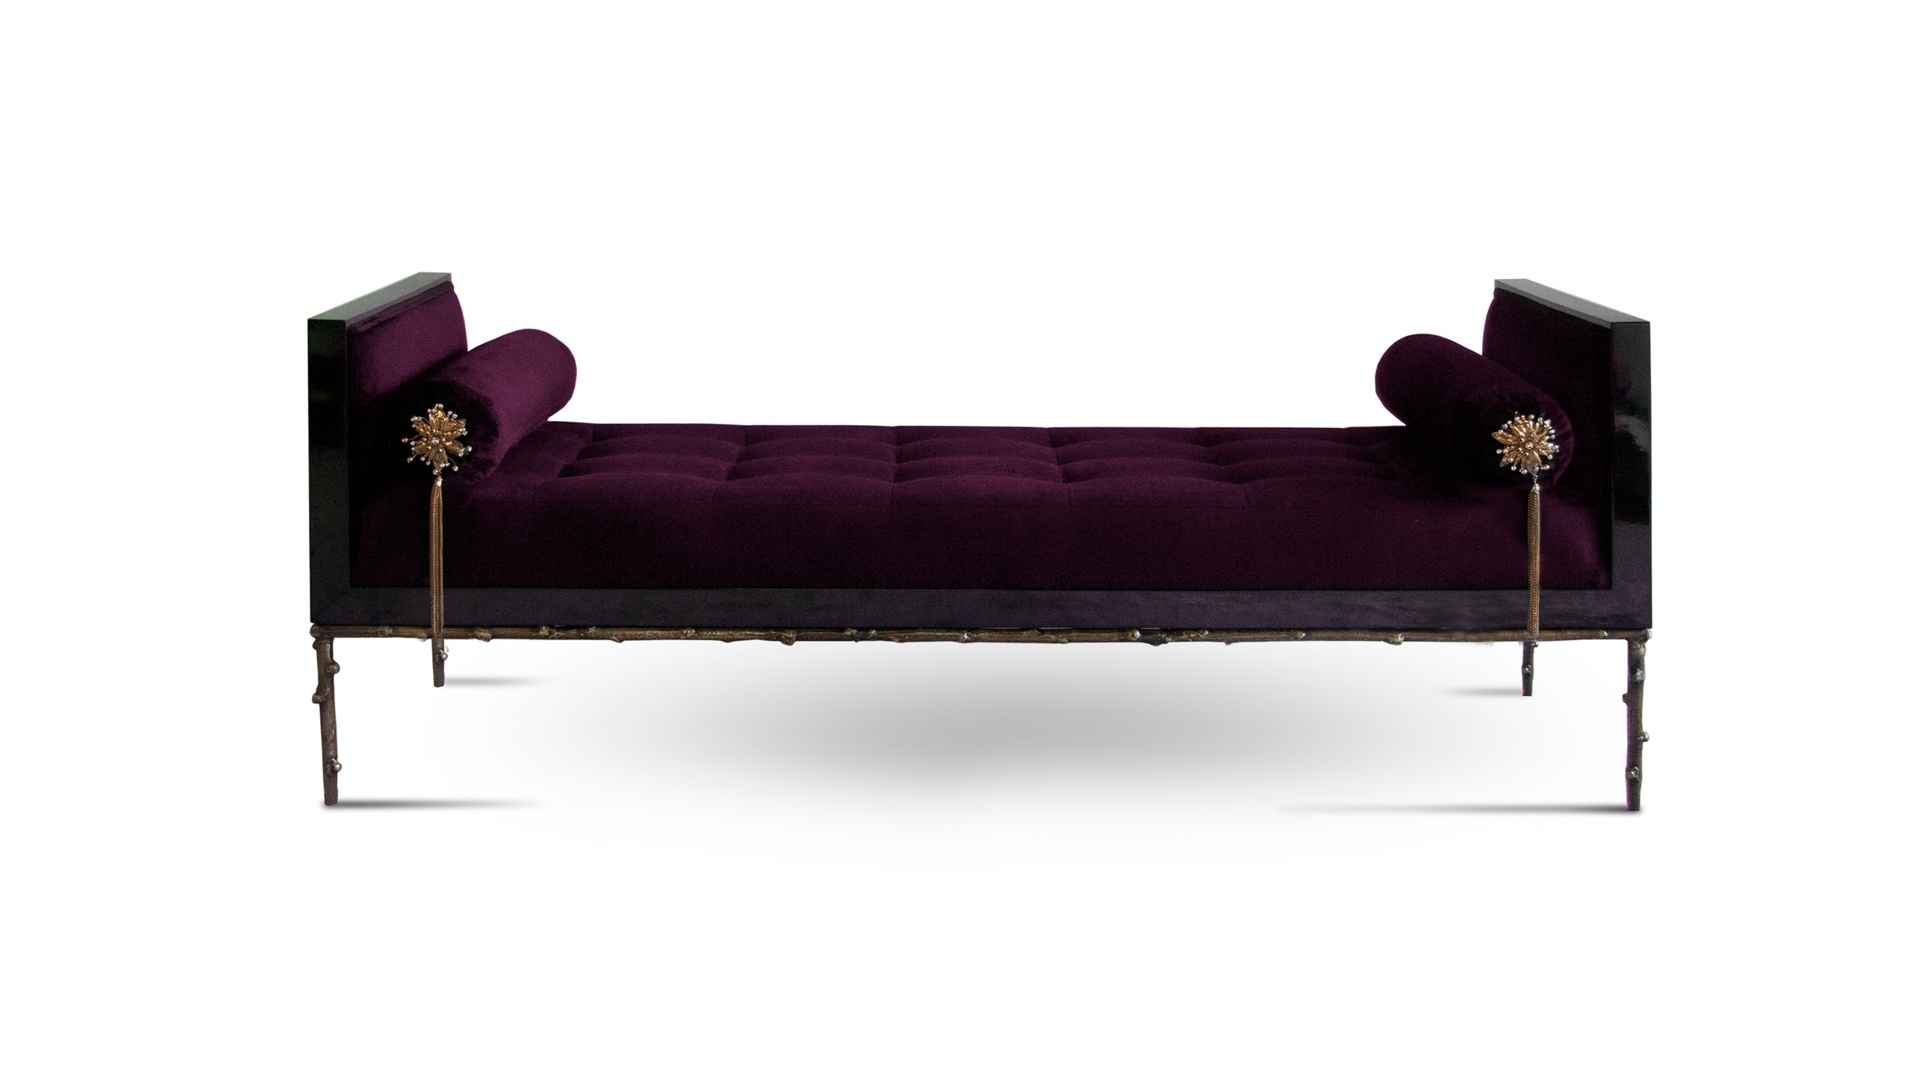 Newest The Best Benches And Chaises For Your Home Decor Regarding Chaise Benchs (View 13 of 15)